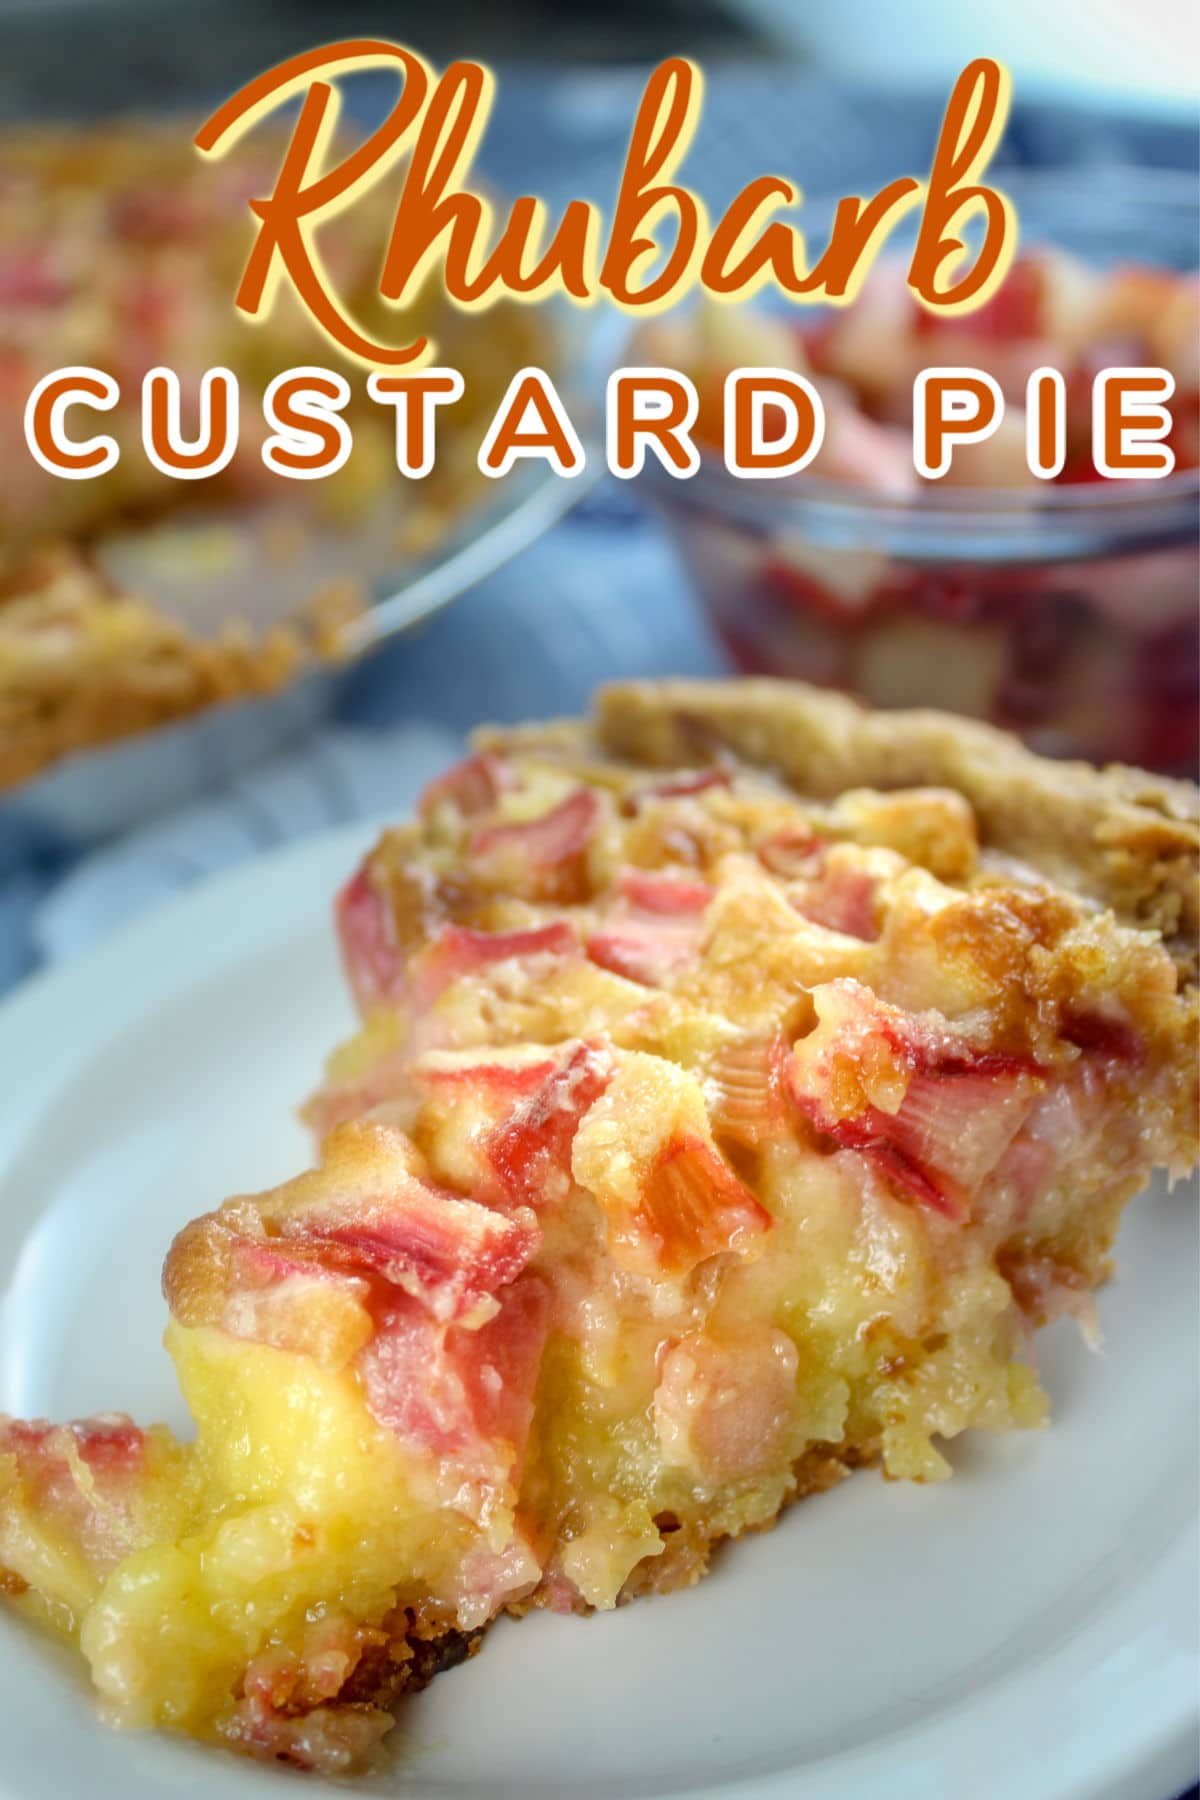 Rhubarb Custard Pie is my favorite dessert but I've never made it - so this year - I decided to give it a whirl for my birthday! via @foodhussy